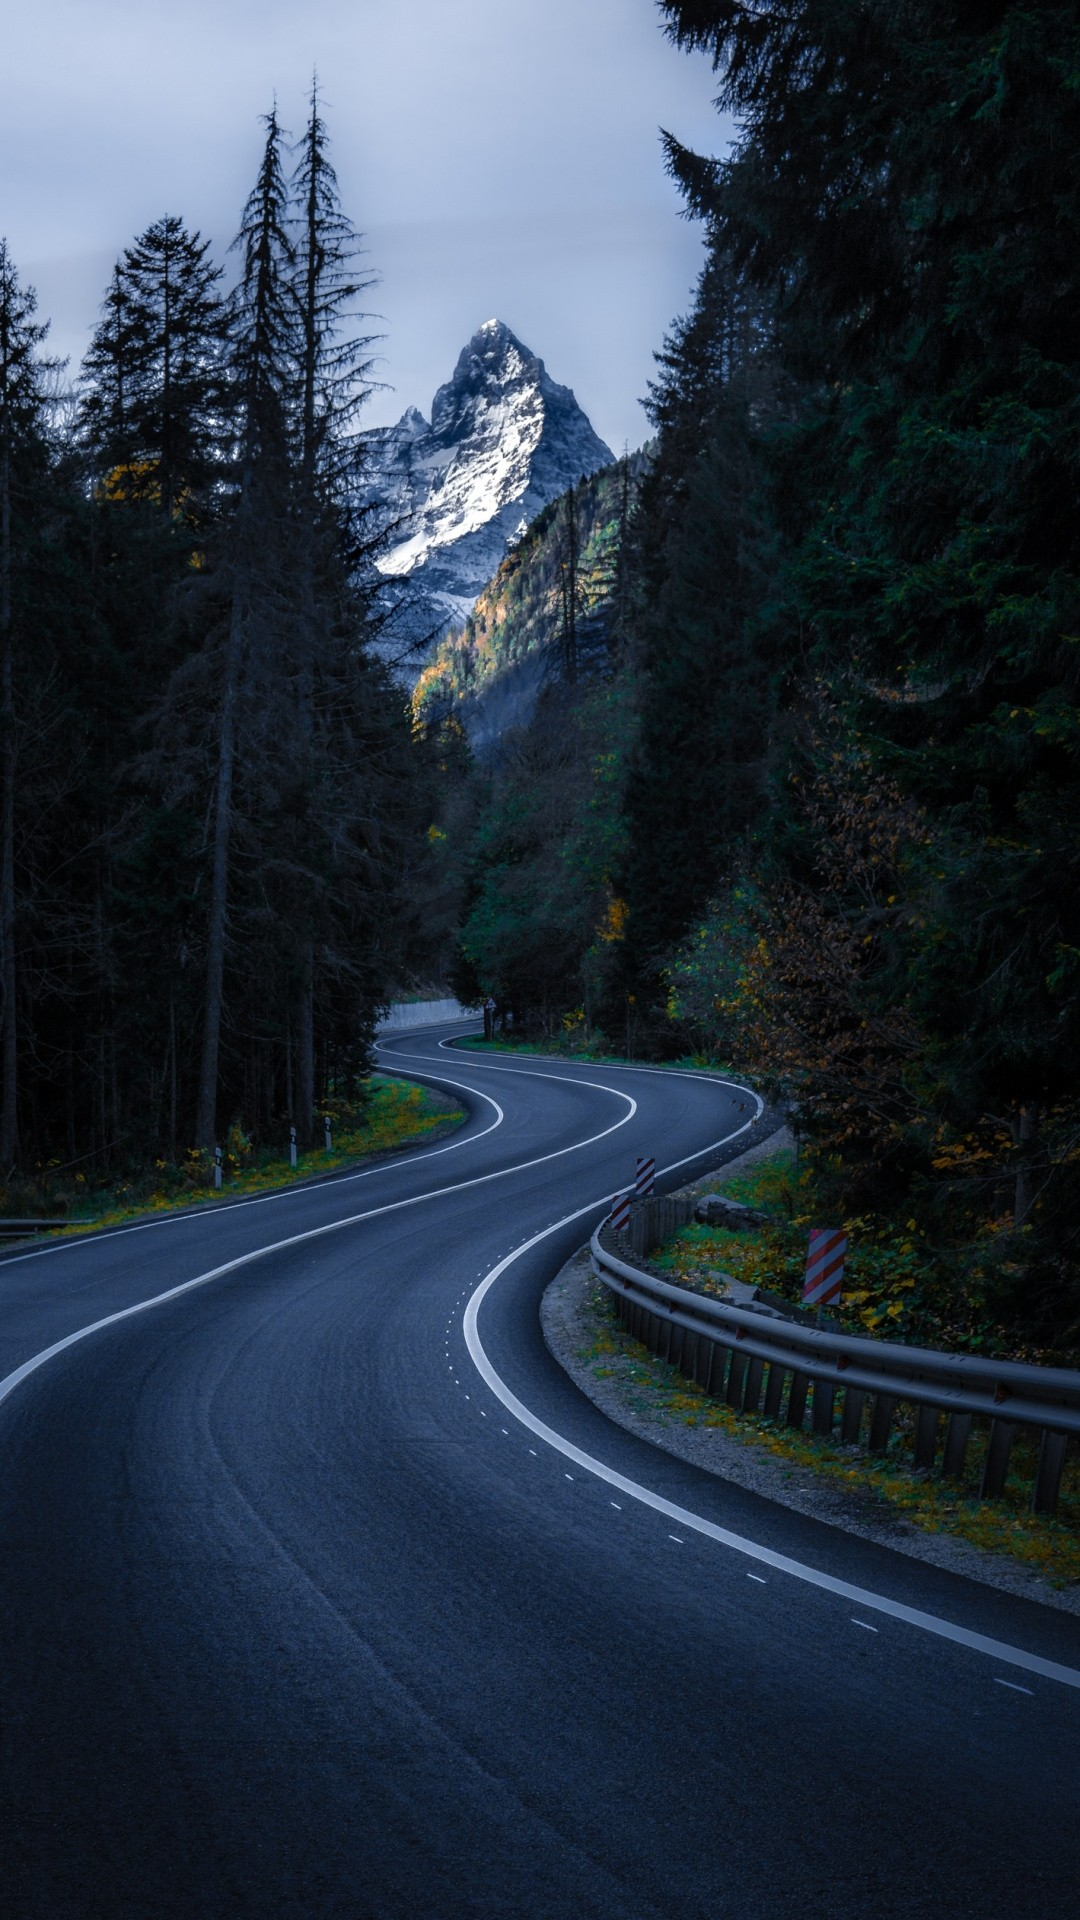 Road hd wallpaper for mobile